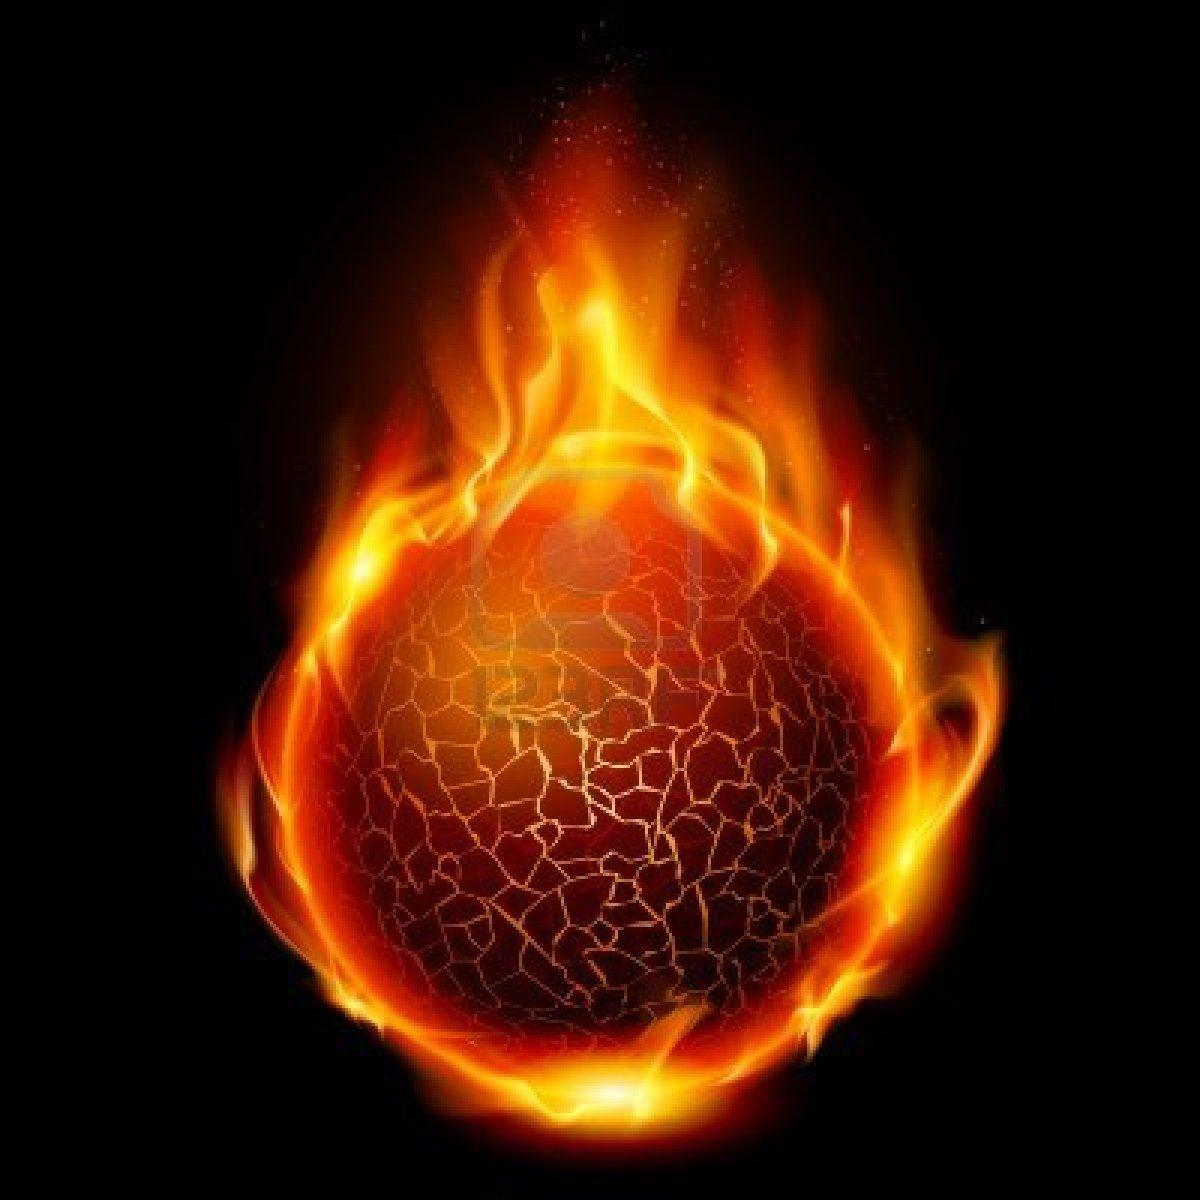 1400x930px #849022 Fire Ball (215.51 KB) | 25.06.2015 | By 2HOT4U